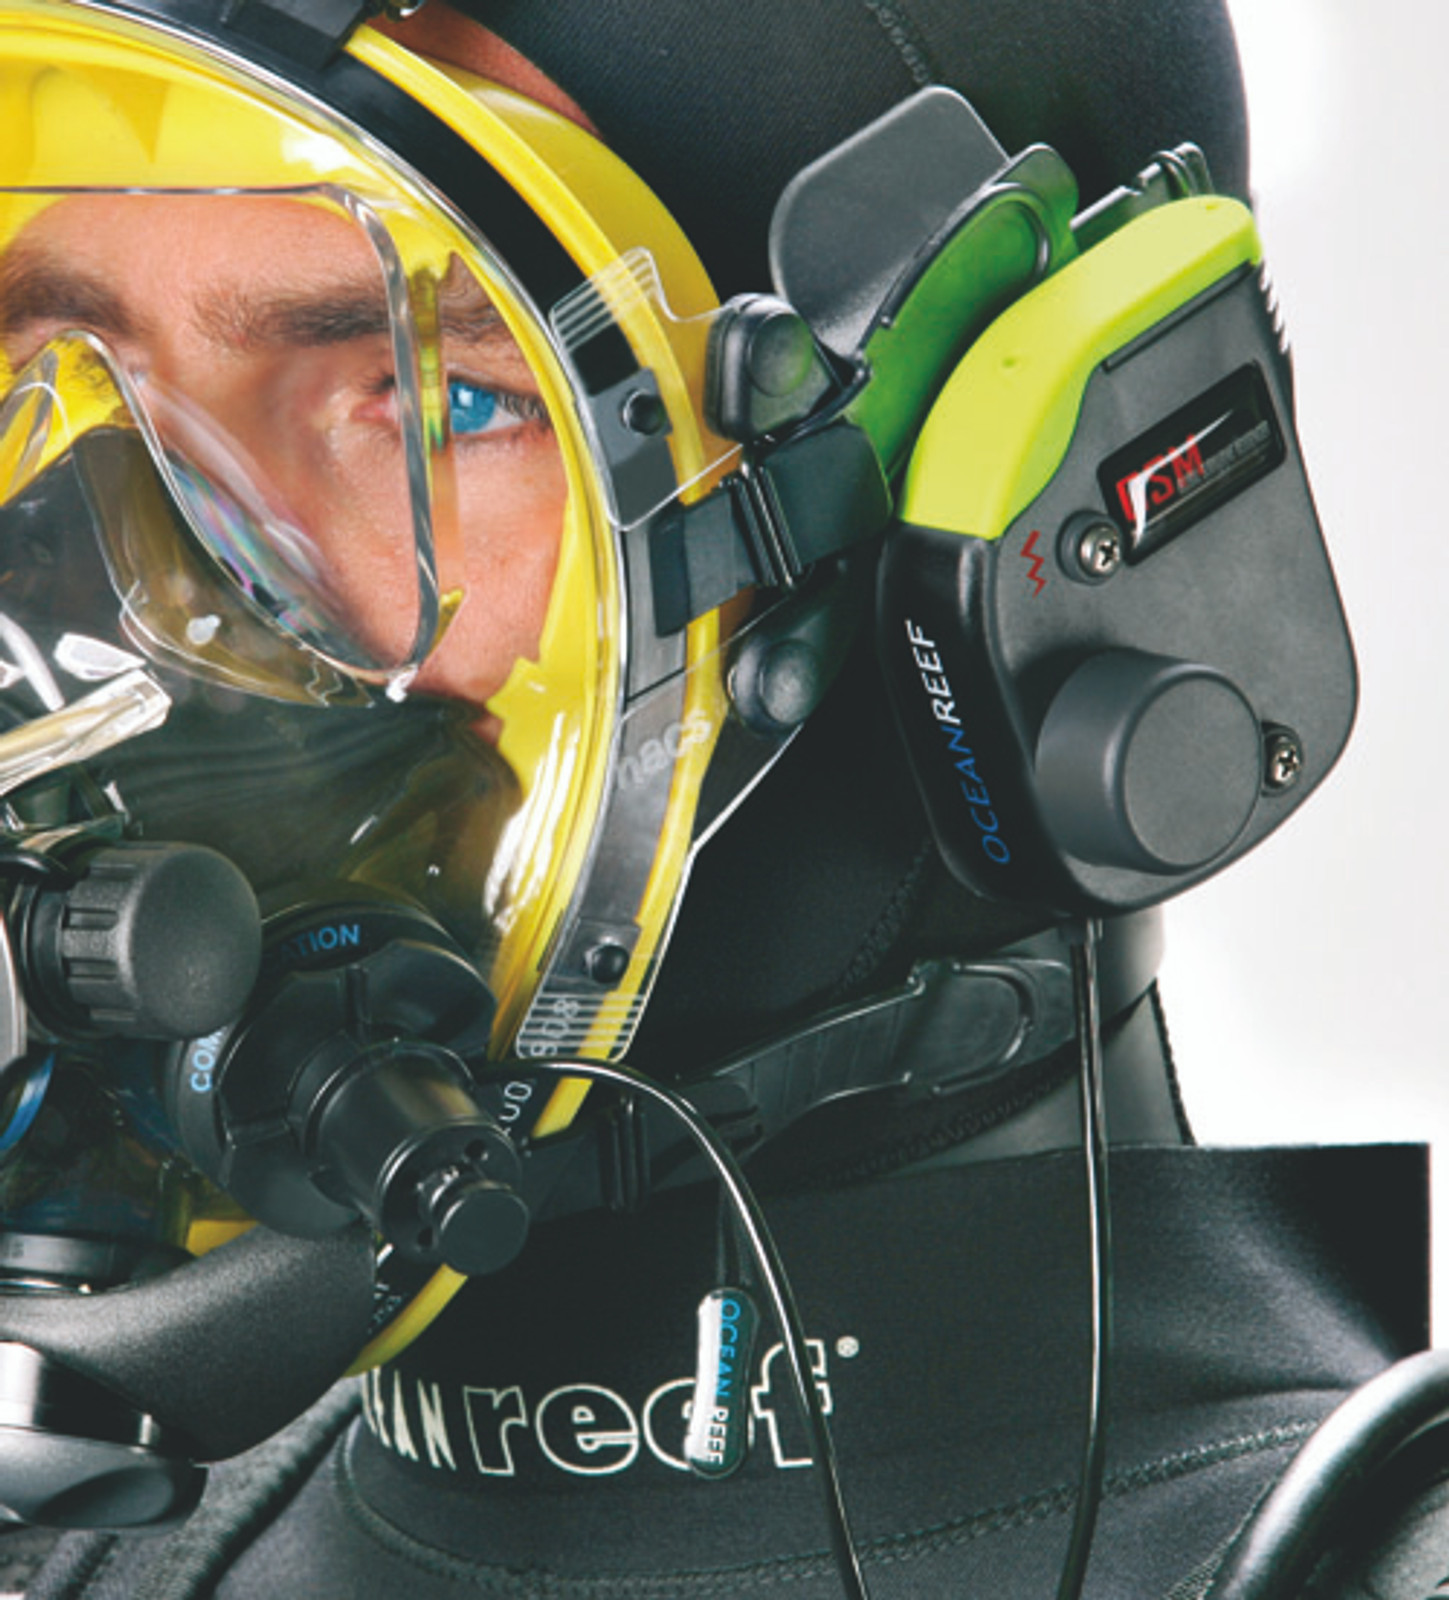 REFURBISHED -  Alpha Pro X-Divers Underwater Unit for Hardwired Communications